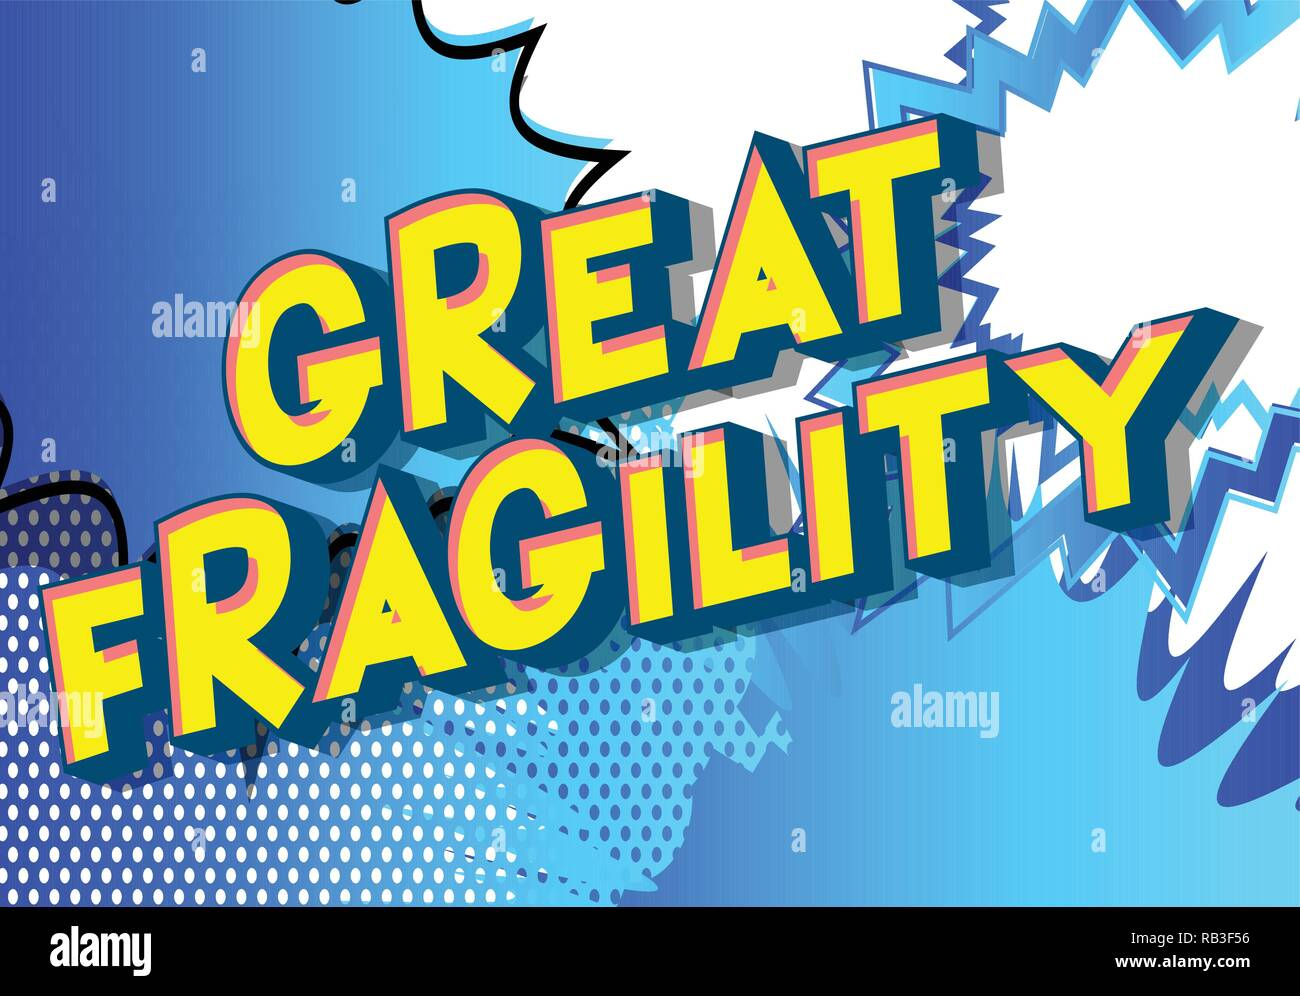 Great Fragility - Vector illustrated comic book style phrase on abstract background. - Stock Vector